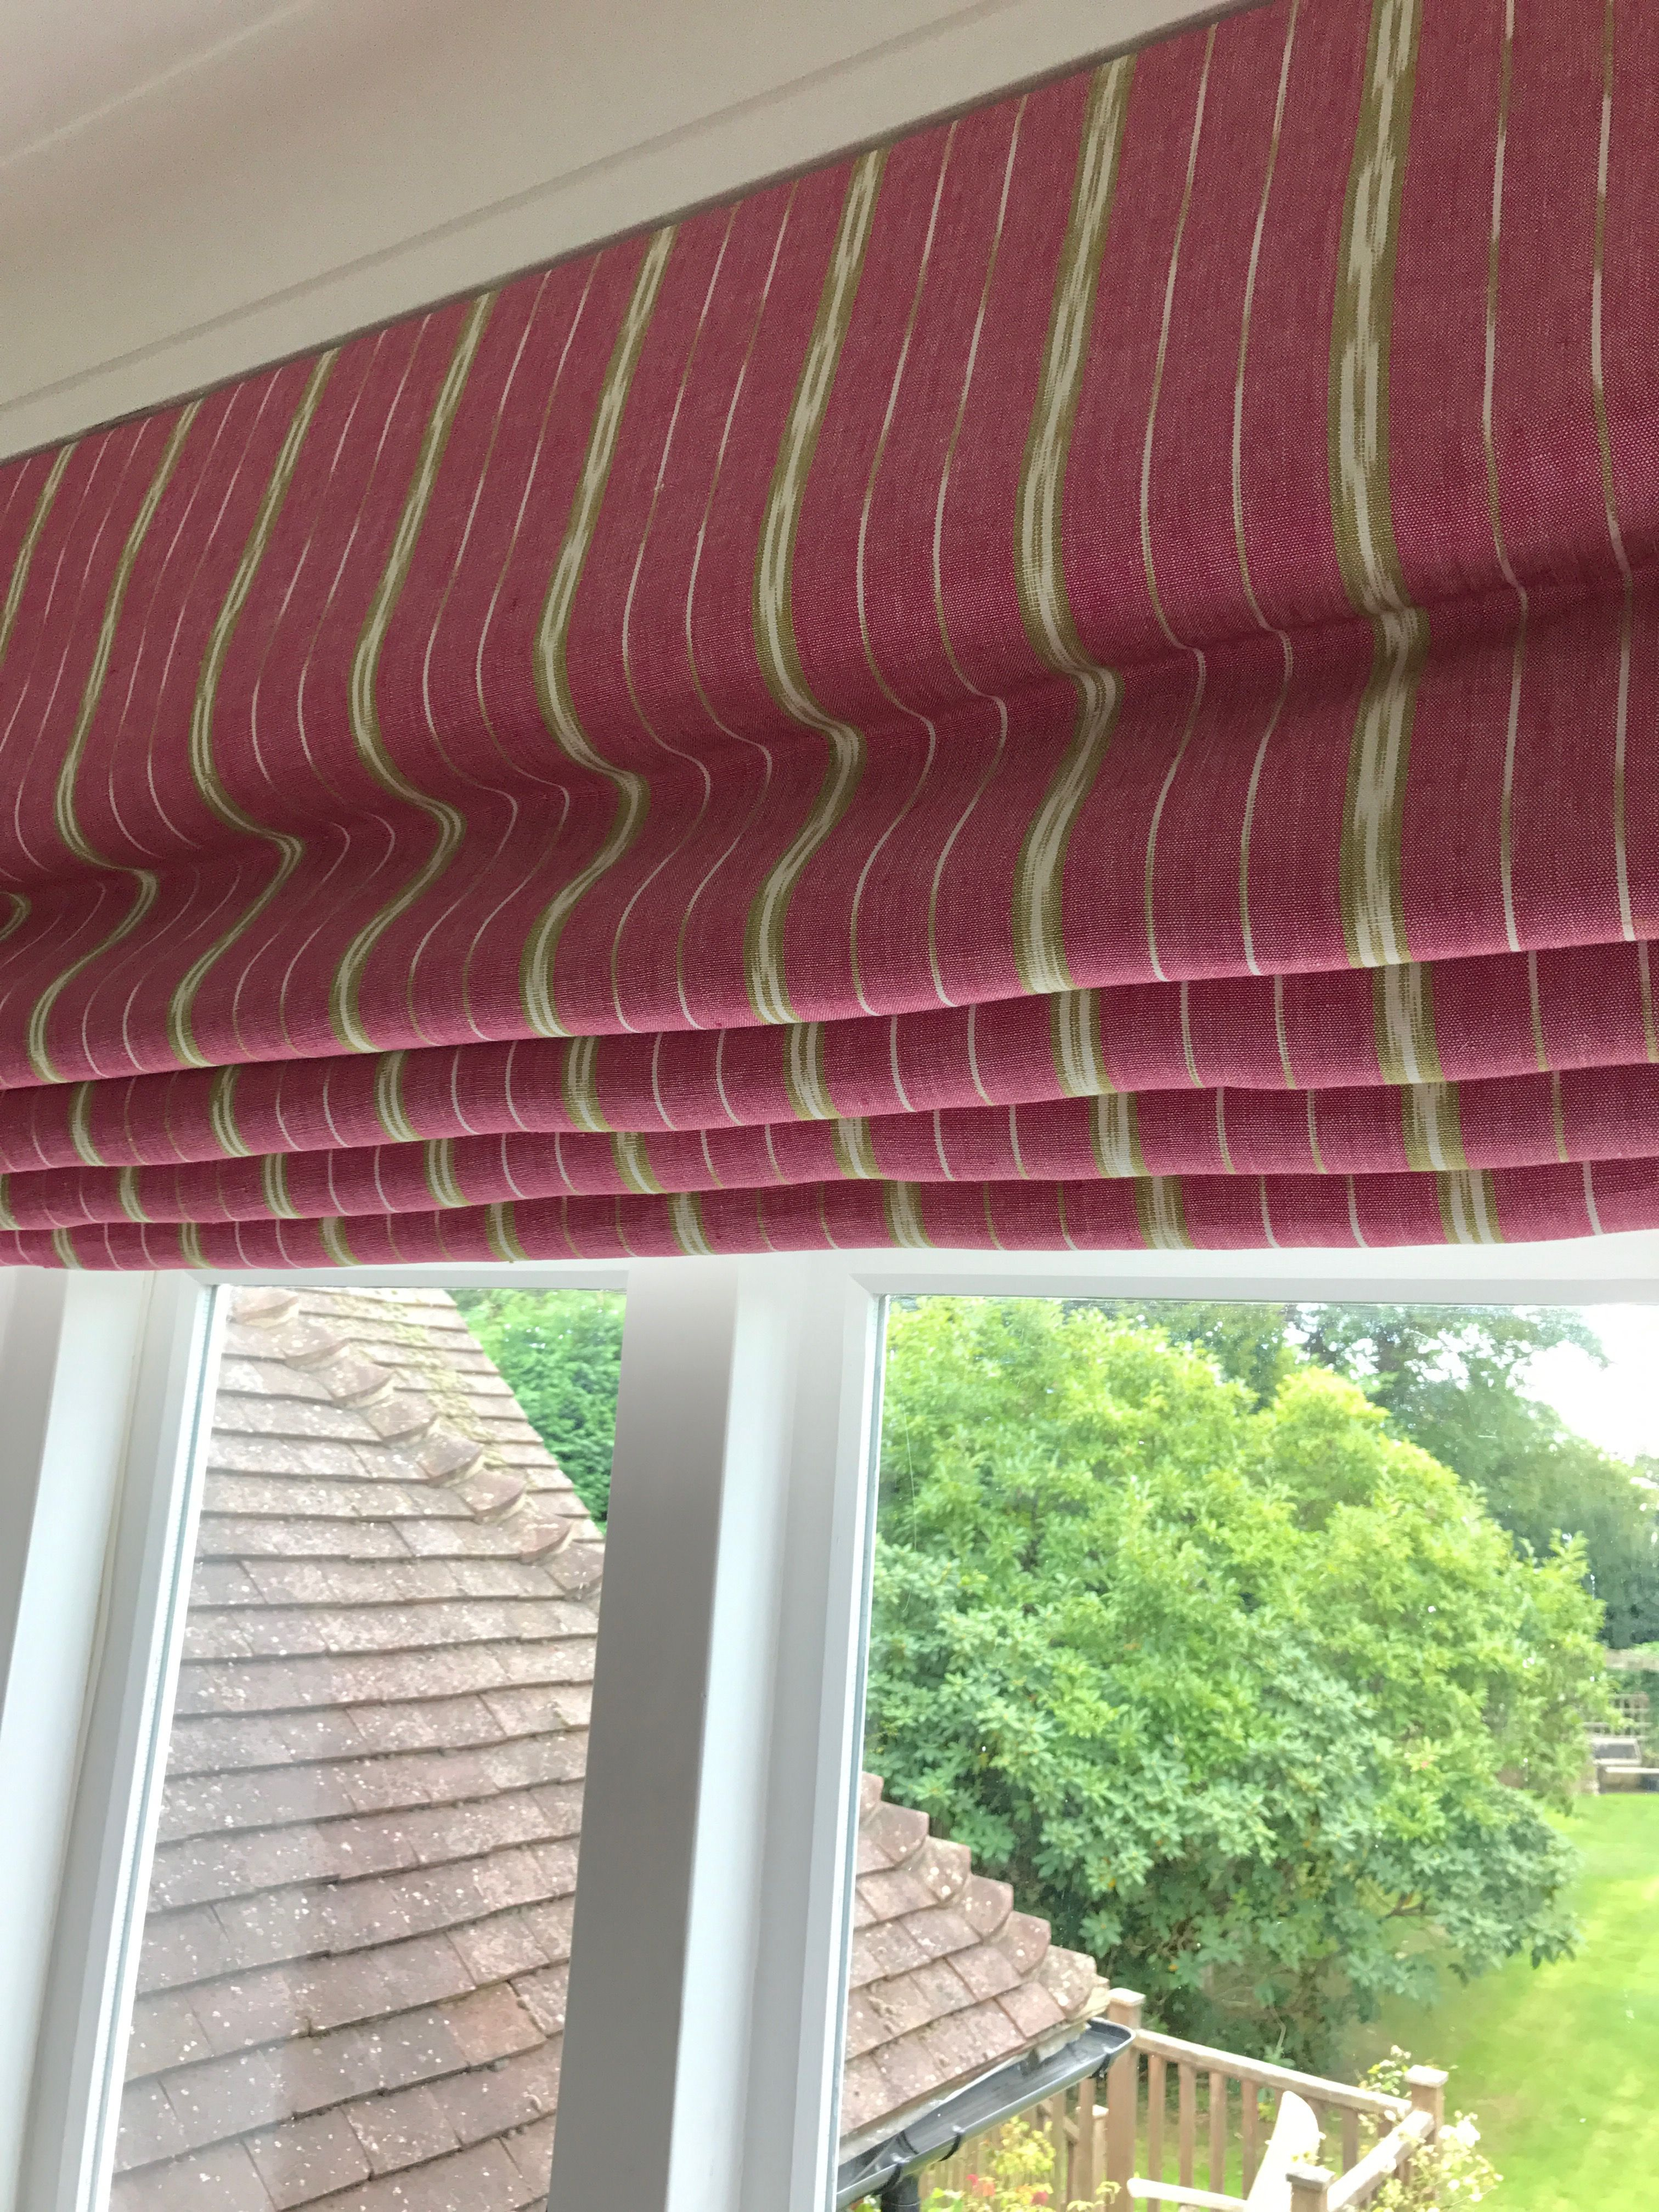 Window coverings for 2 story windows  roman blind made for a bathroom handmade by louise cowan interiors